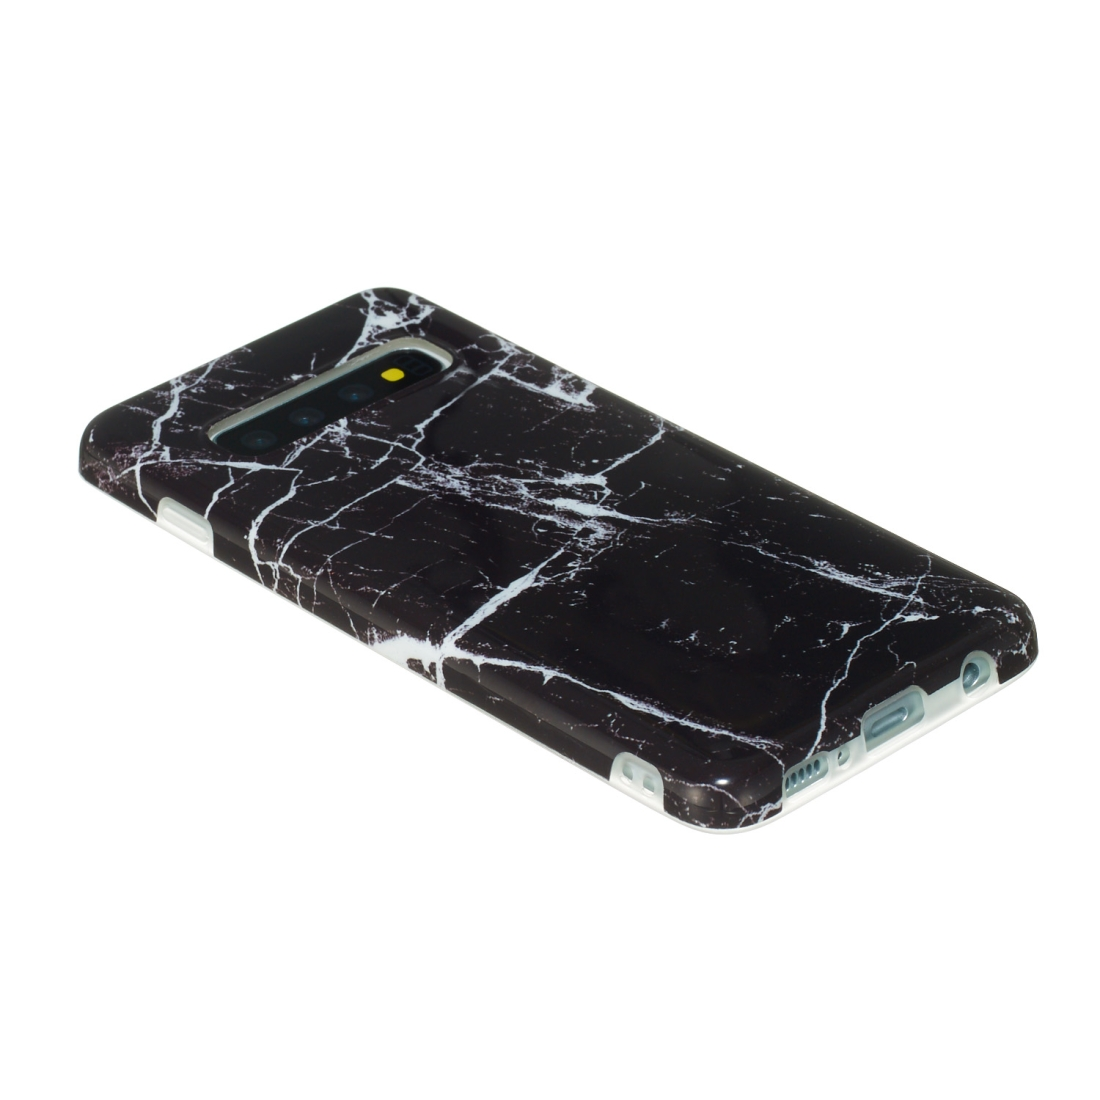 TPU Protective Case For Galaxy S10 Plus (Black Marble)